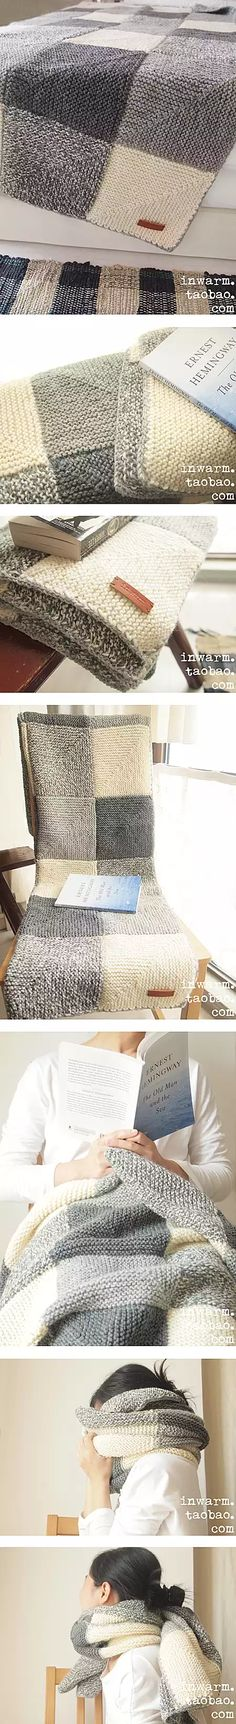 NEW for 2014 this crocheted blanket is an original design that is easy to complete. The entire blanket requires only three crochet stitches - chain stitch, sing Knitted Afghans, Crochet Blanket Patterns, Knitted Blankets, Knitting Patterns, Yarn Projects, Knitting Projects, Crochet Projects, Sewing Projects, Manta Crochet